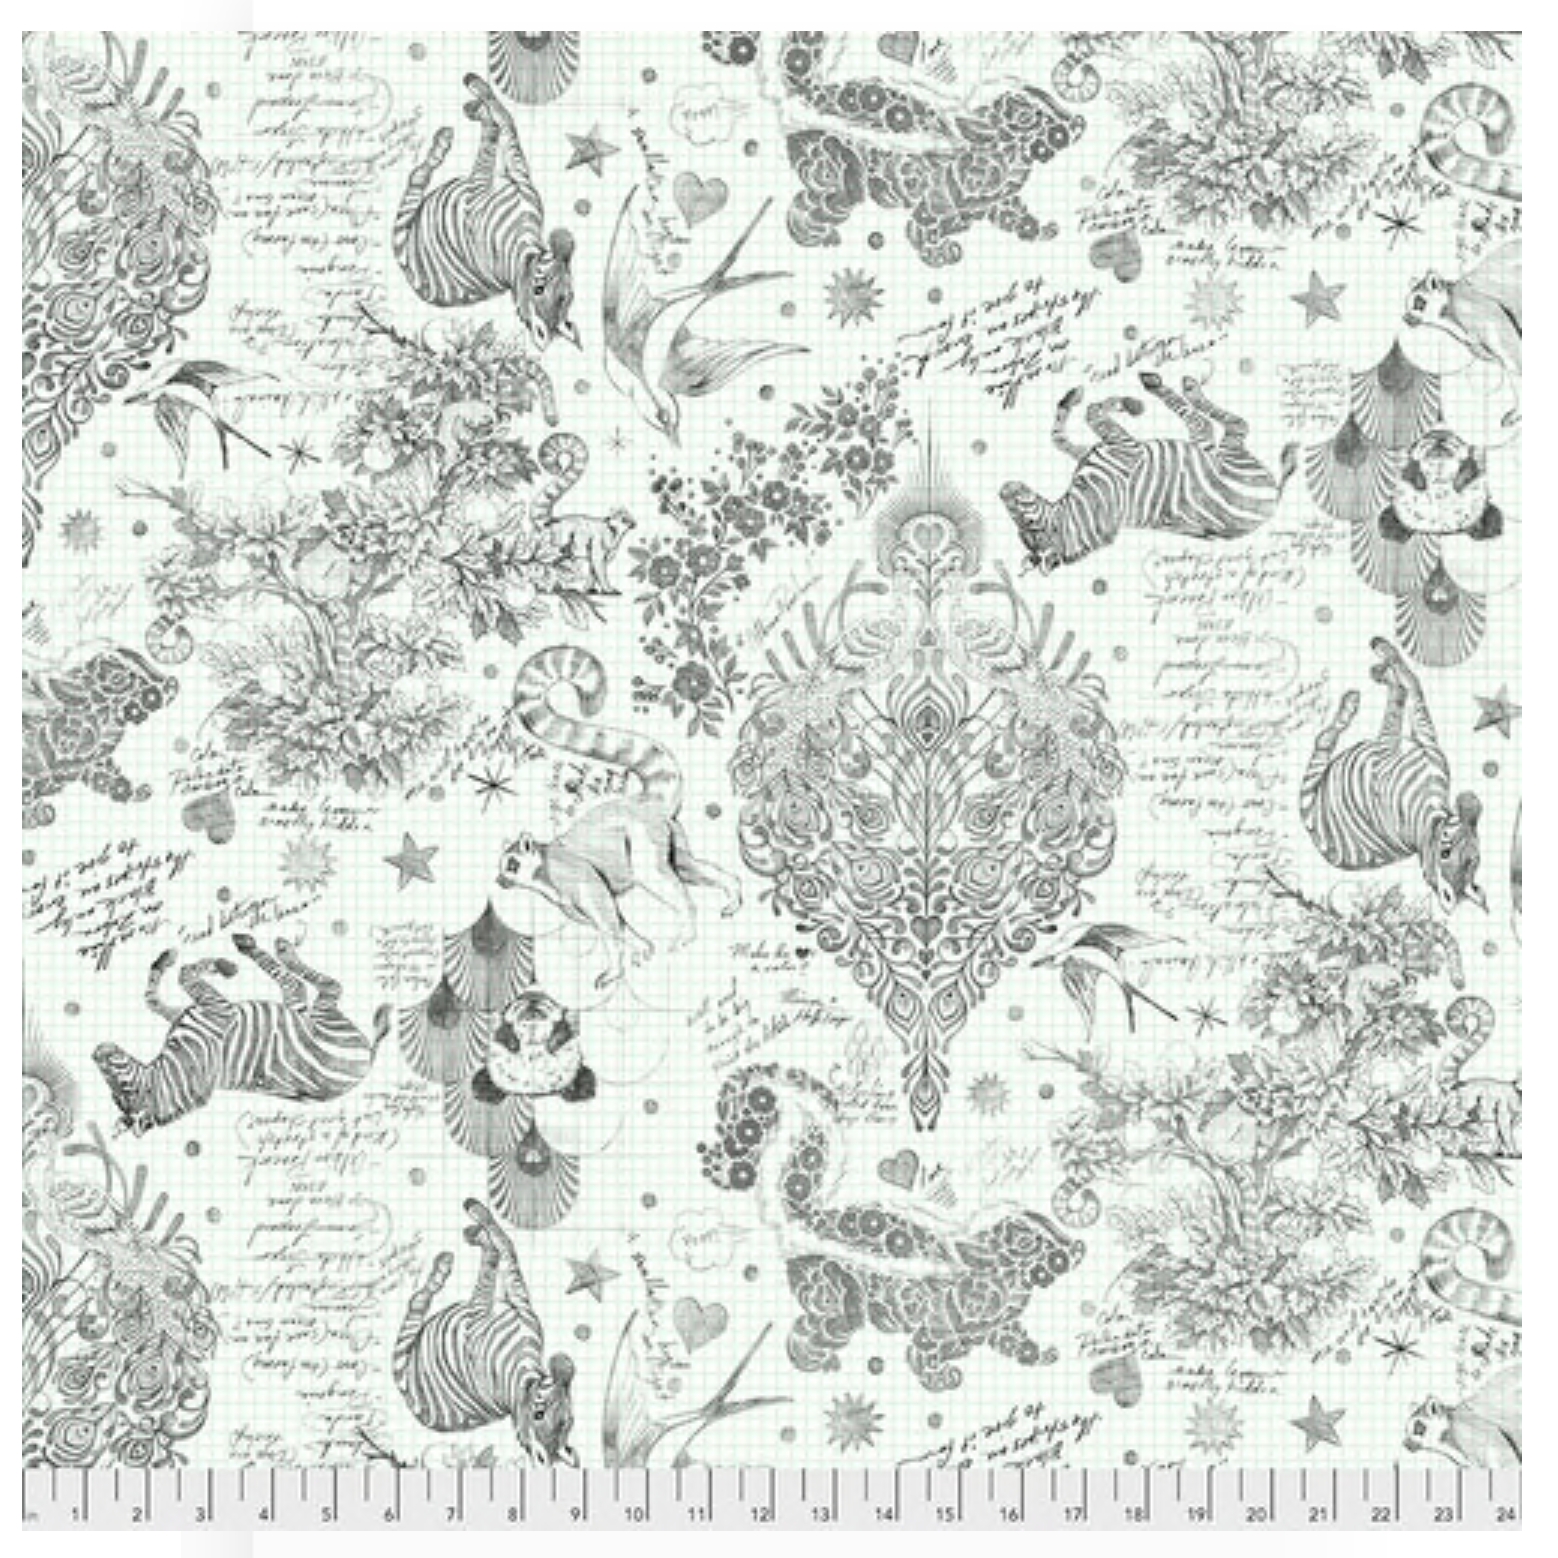 Paper -Sketchyer -  Backing Fabric - Line Work by Tula Pink -